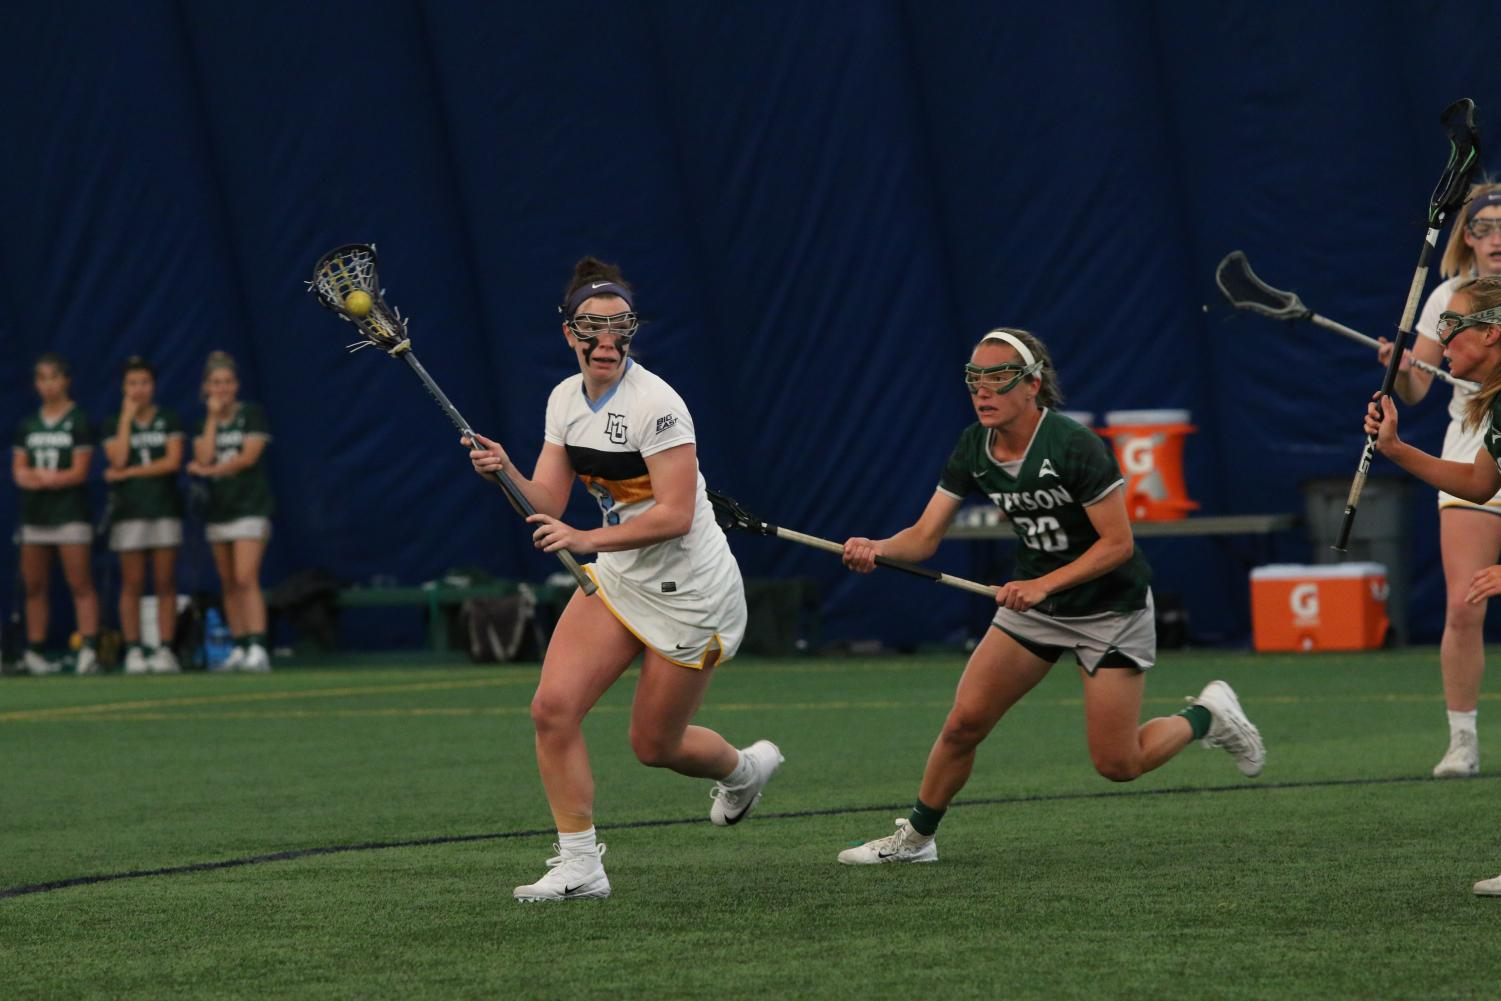 Junior Grace Gabriel scored four goals against Northwestern to bring her season total to 30.